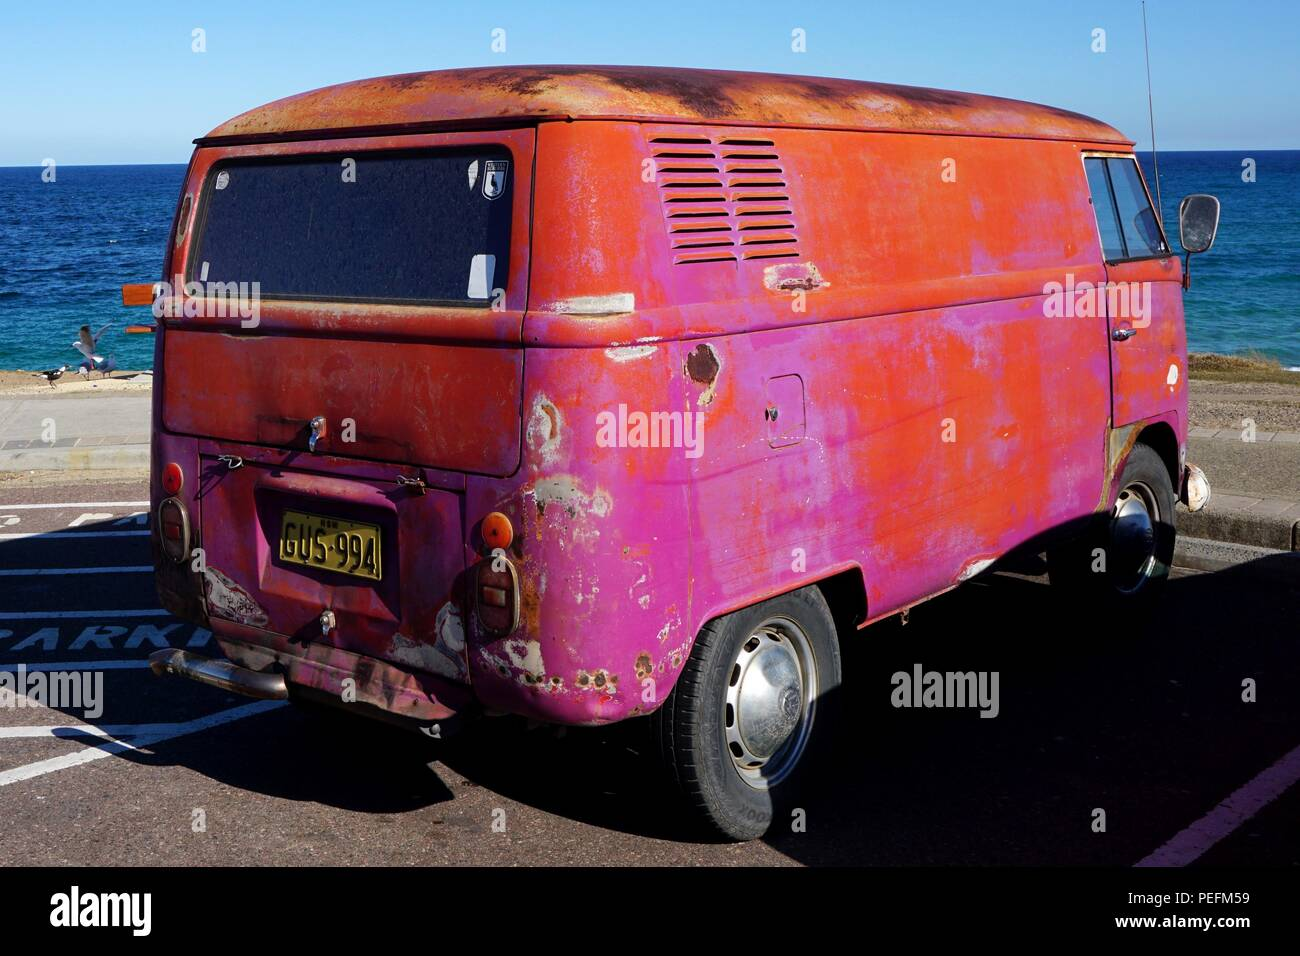 Close Up of Battered, Orange and Pink VW Campervan at Soldiers Beach, New South Wales, Australia - Stock Image